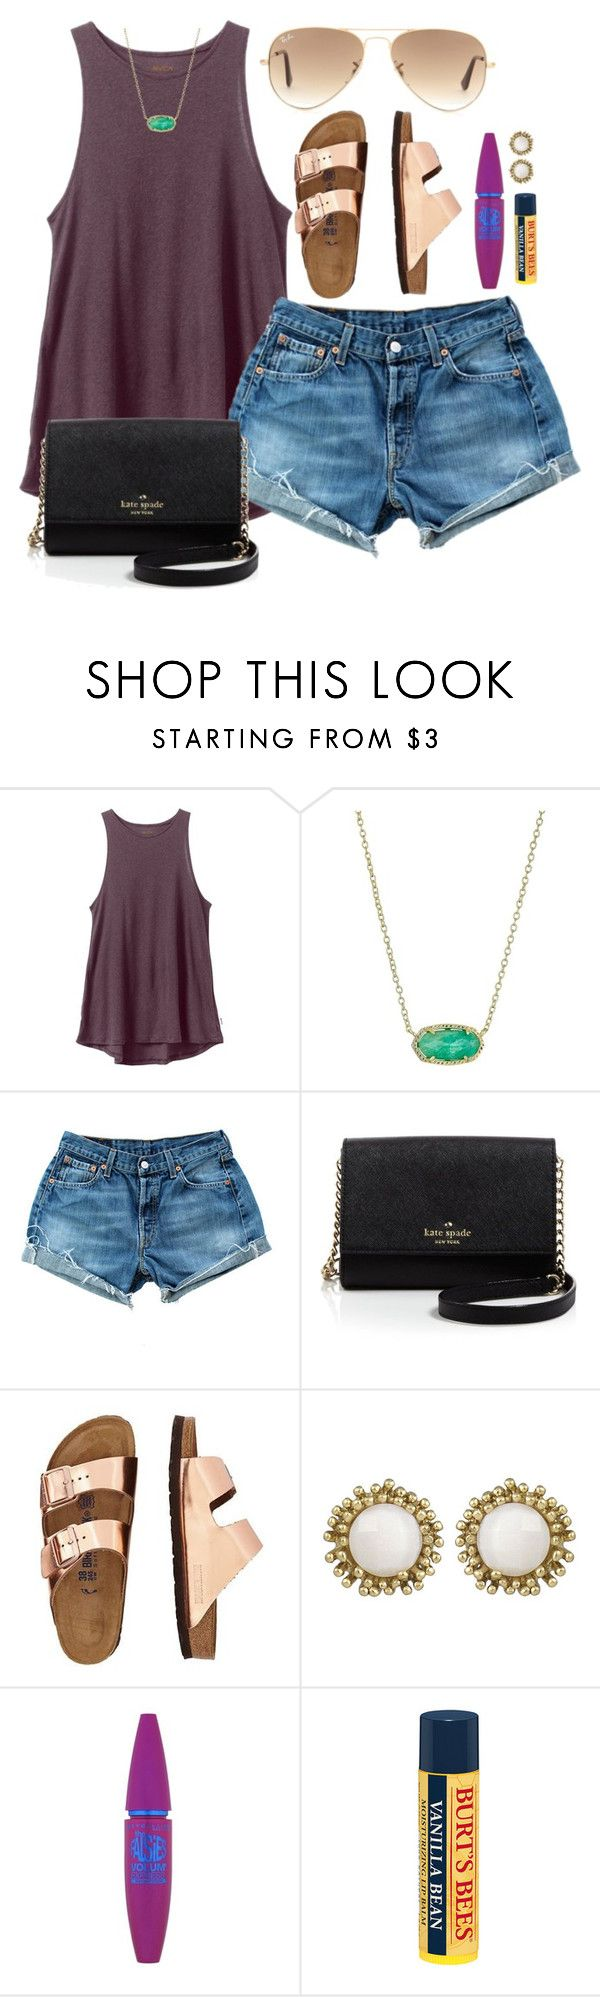 """""""spring break contest day seven✳"""" by madiweeksss ❤ liked on Polyvore featuring RVCA, Kendra Scott, Levi's, Kate Spade, TravelSmith, Maybelline, Burt's Bees, Ray-Ban and graciesspringbreak16"""